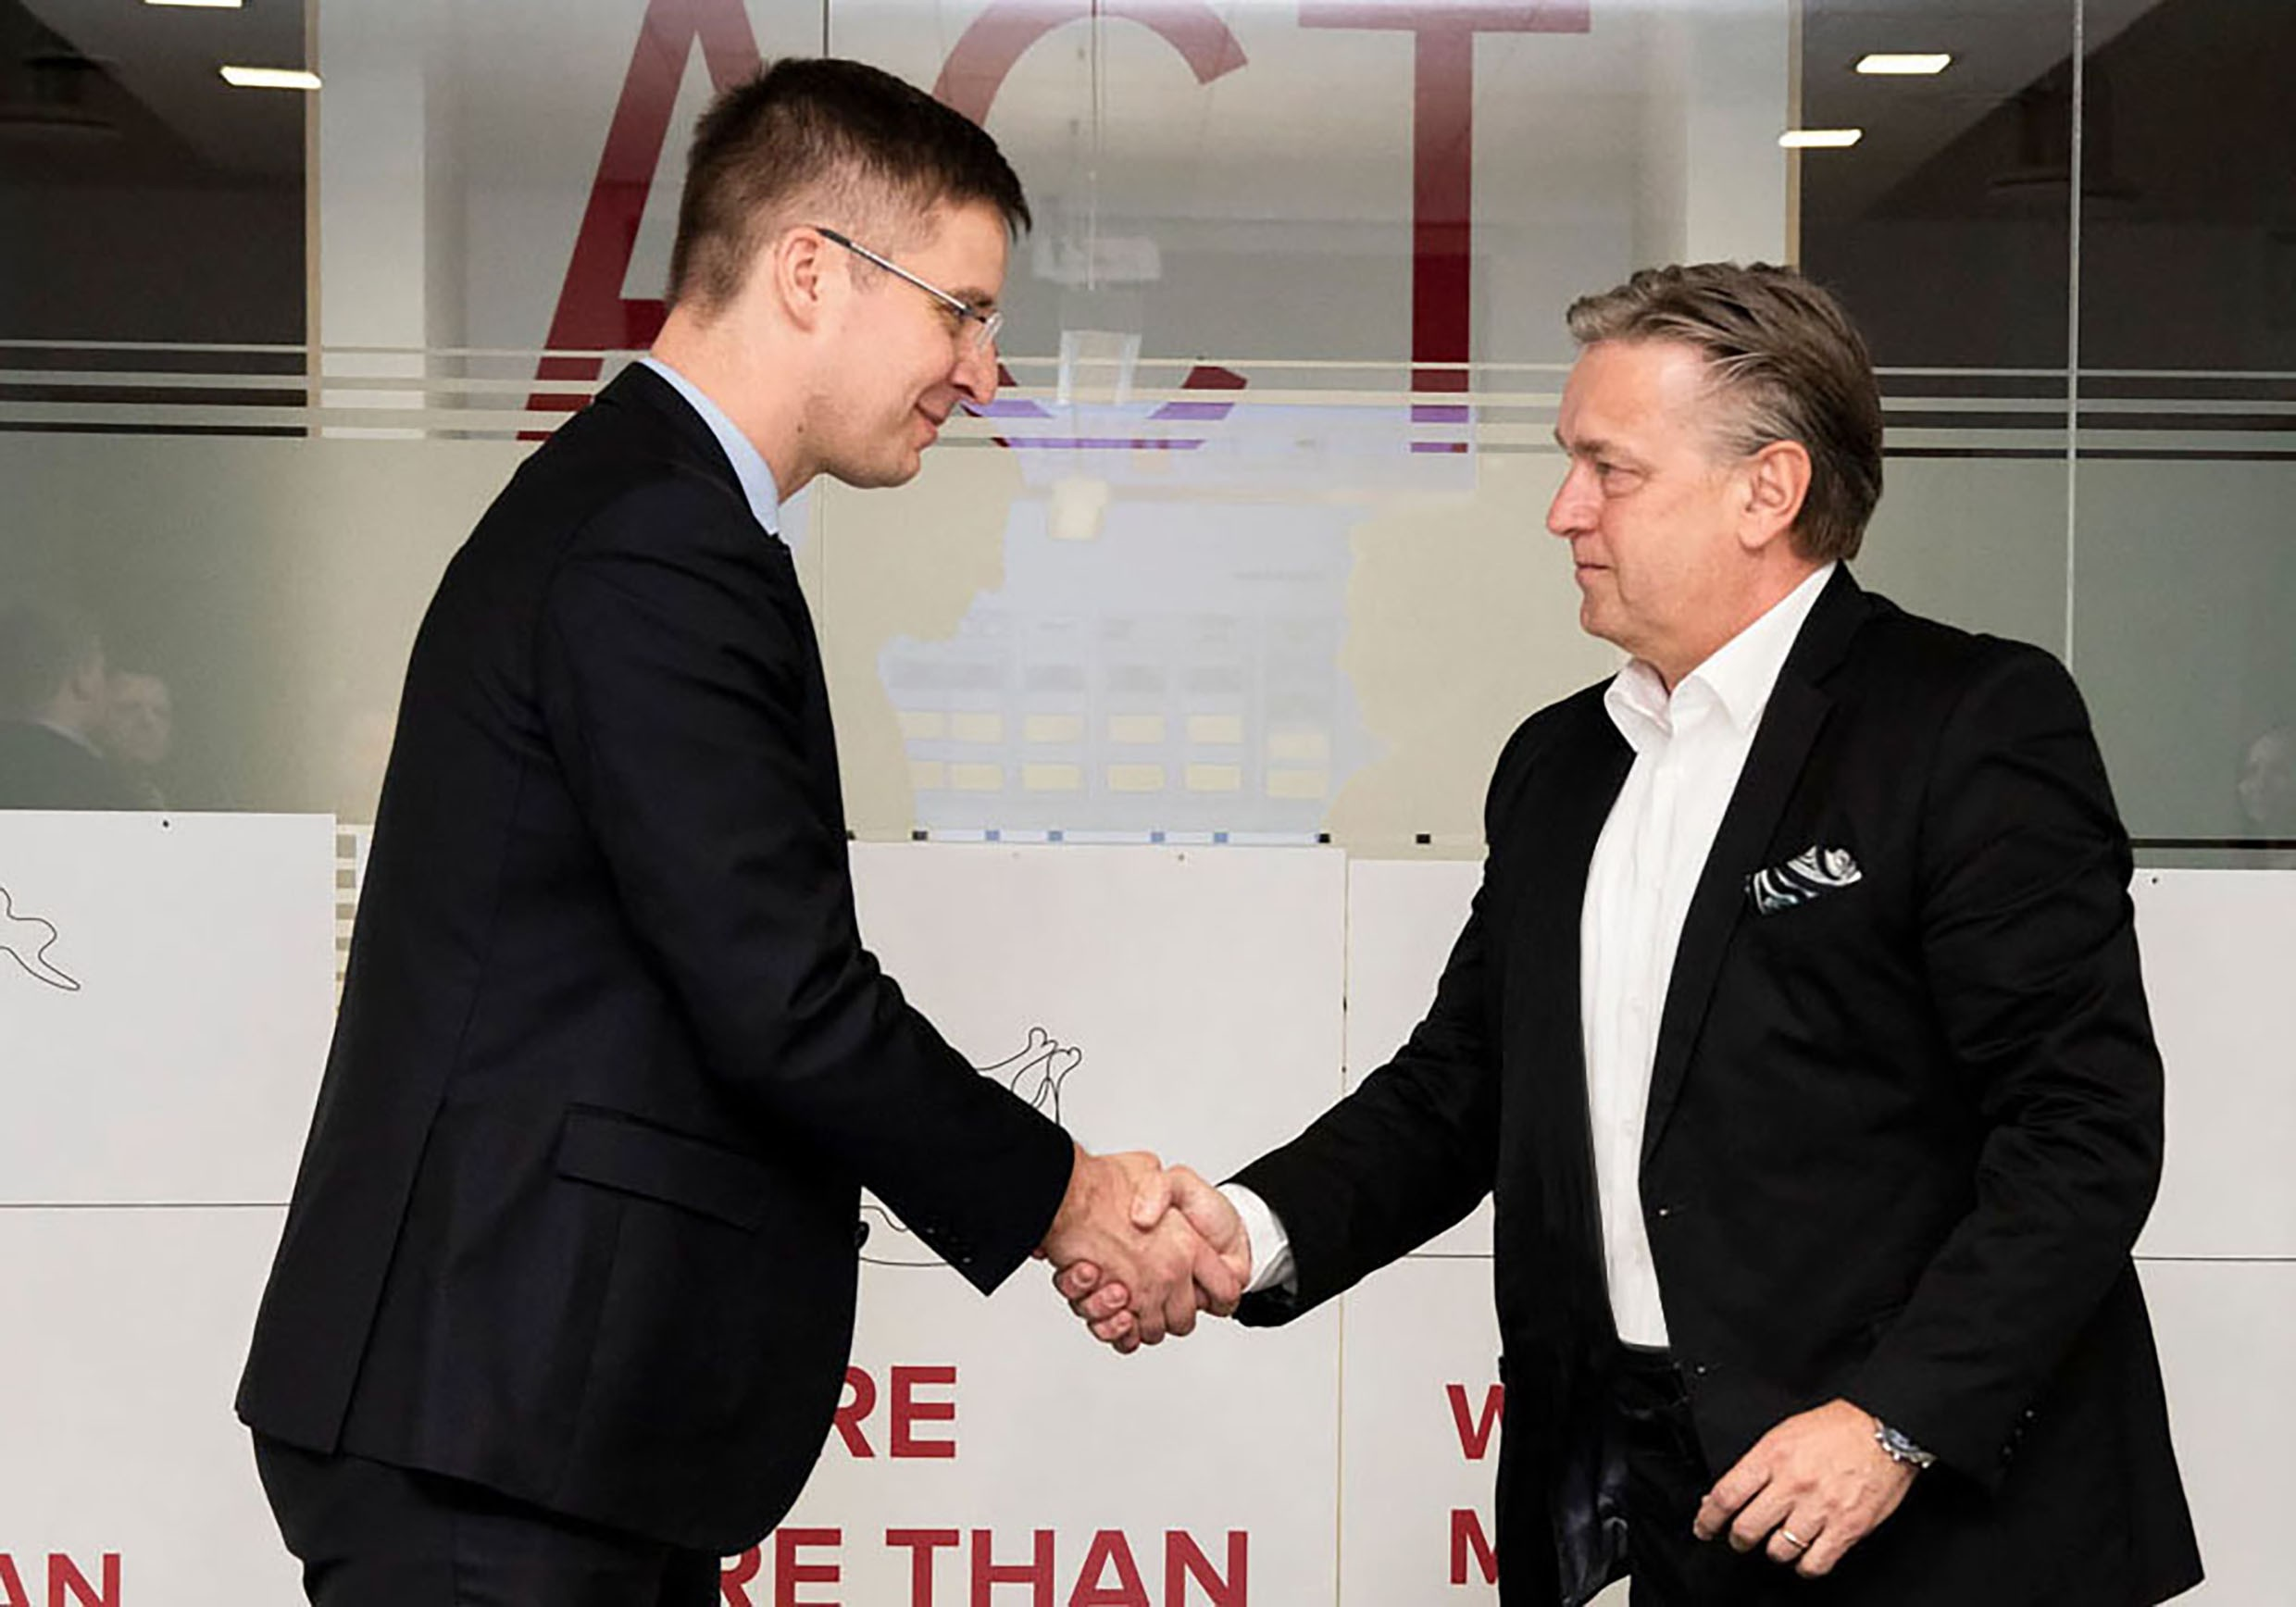 Dario Travas, ATP Partner and Head of Design (Vienna) with Laurynas Kuzavas, CEO of SIRIN Development.<br><span class='image_copyright'>Kęstutis Garbonis</span><br>